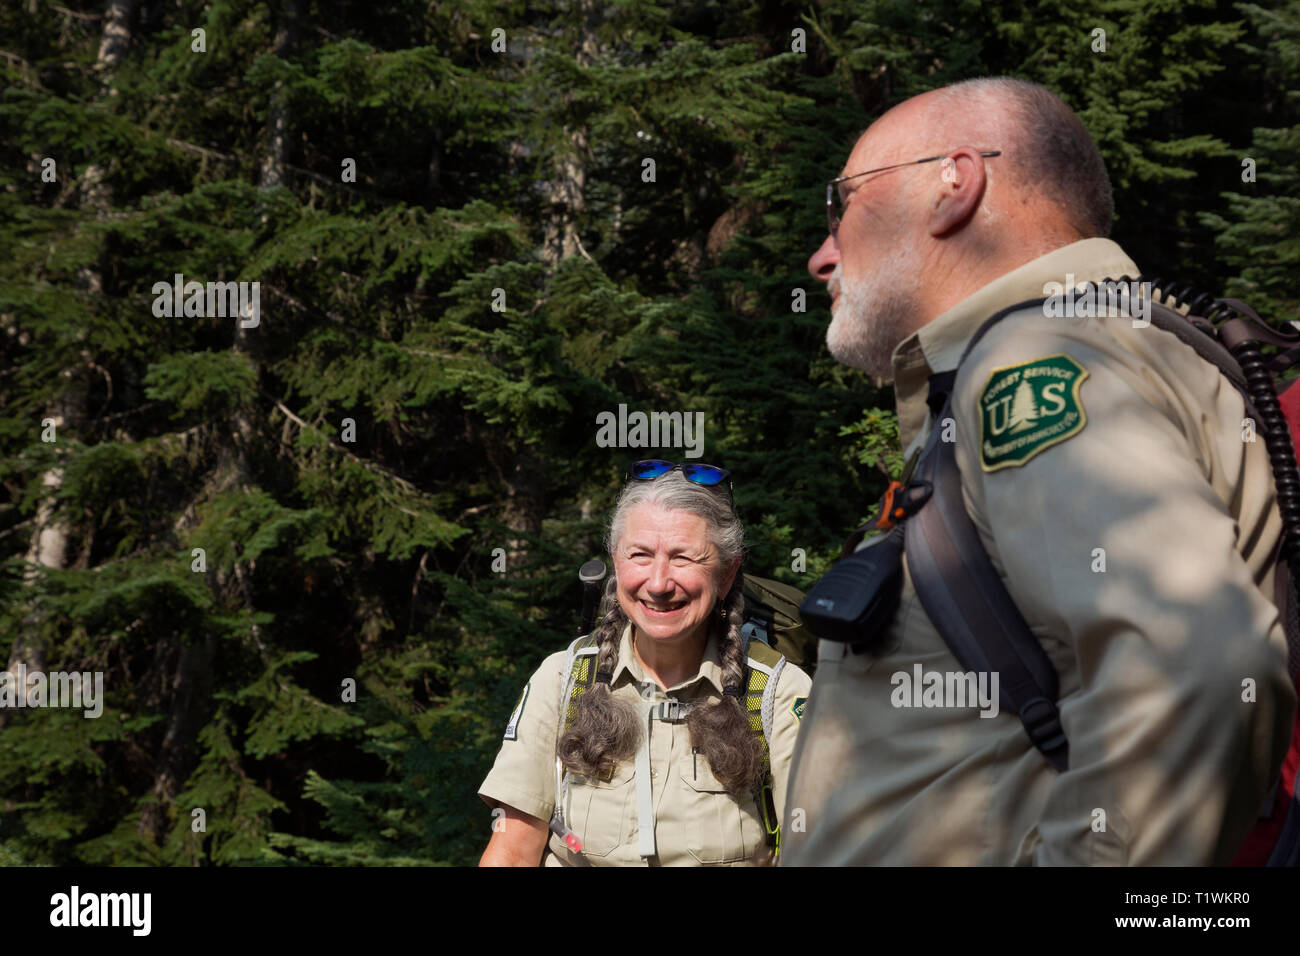 WASHINGTON - John Spring and Jane Ellen Seymour standing at the Snow Lakes Trailhead to to greet hikers and answer questions posed by hikers. - Stock Image